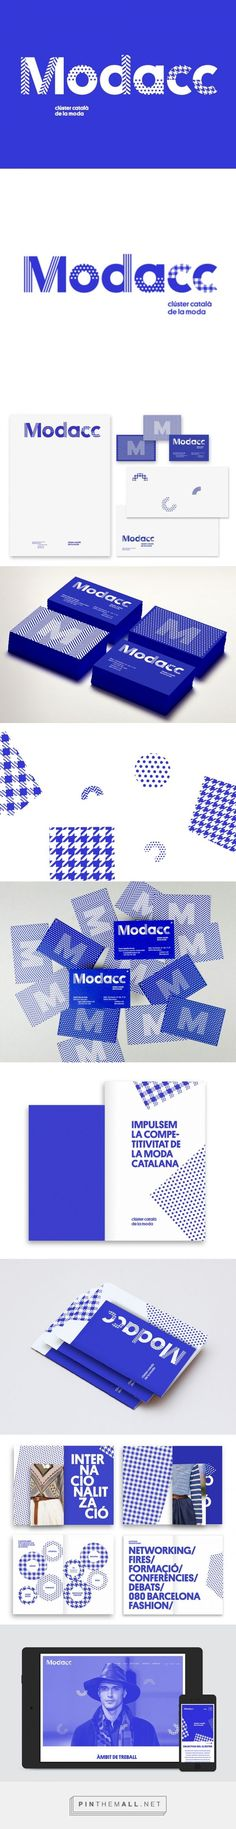 Royal blue MODACC Brand identity